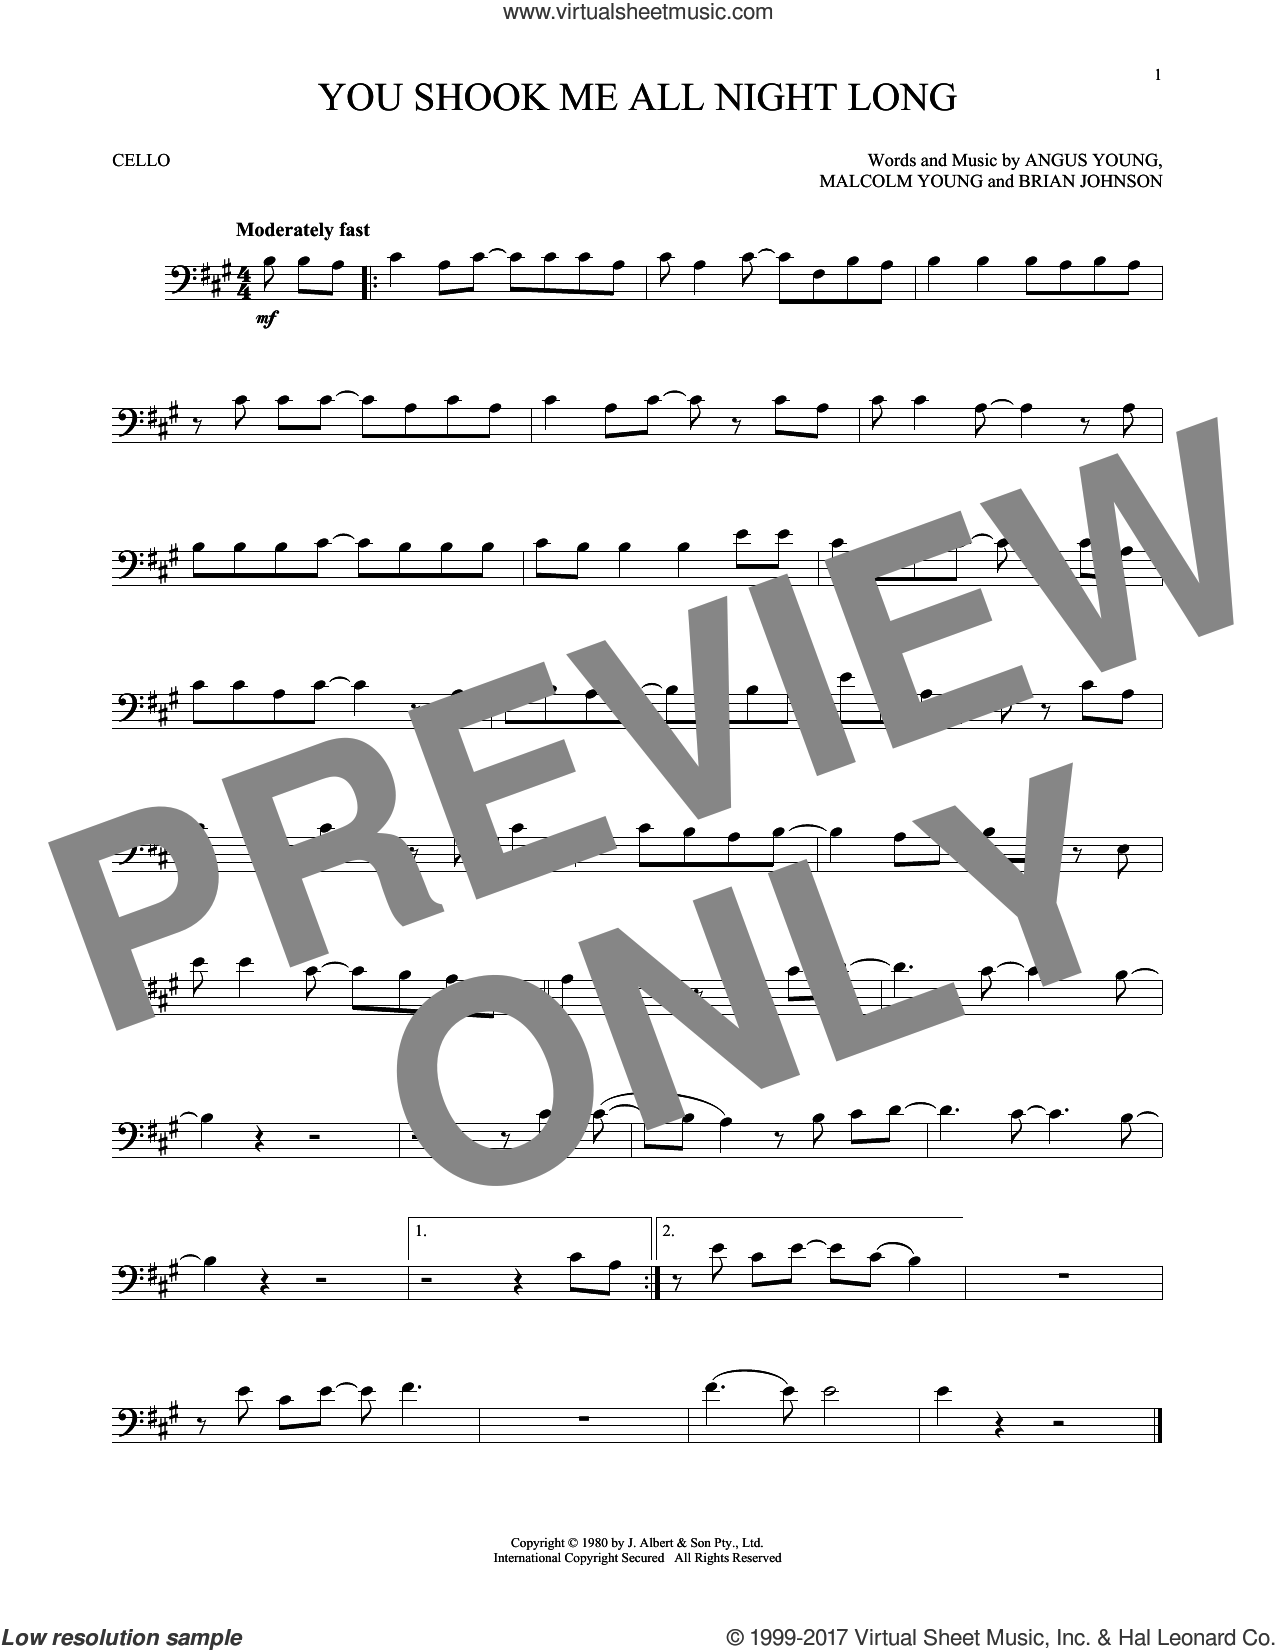 You Shook Me All Night Long sheet music for cello solo by AC/DC, Angus Young, Brian Johnson and Malcolm Young, intermediate skill level